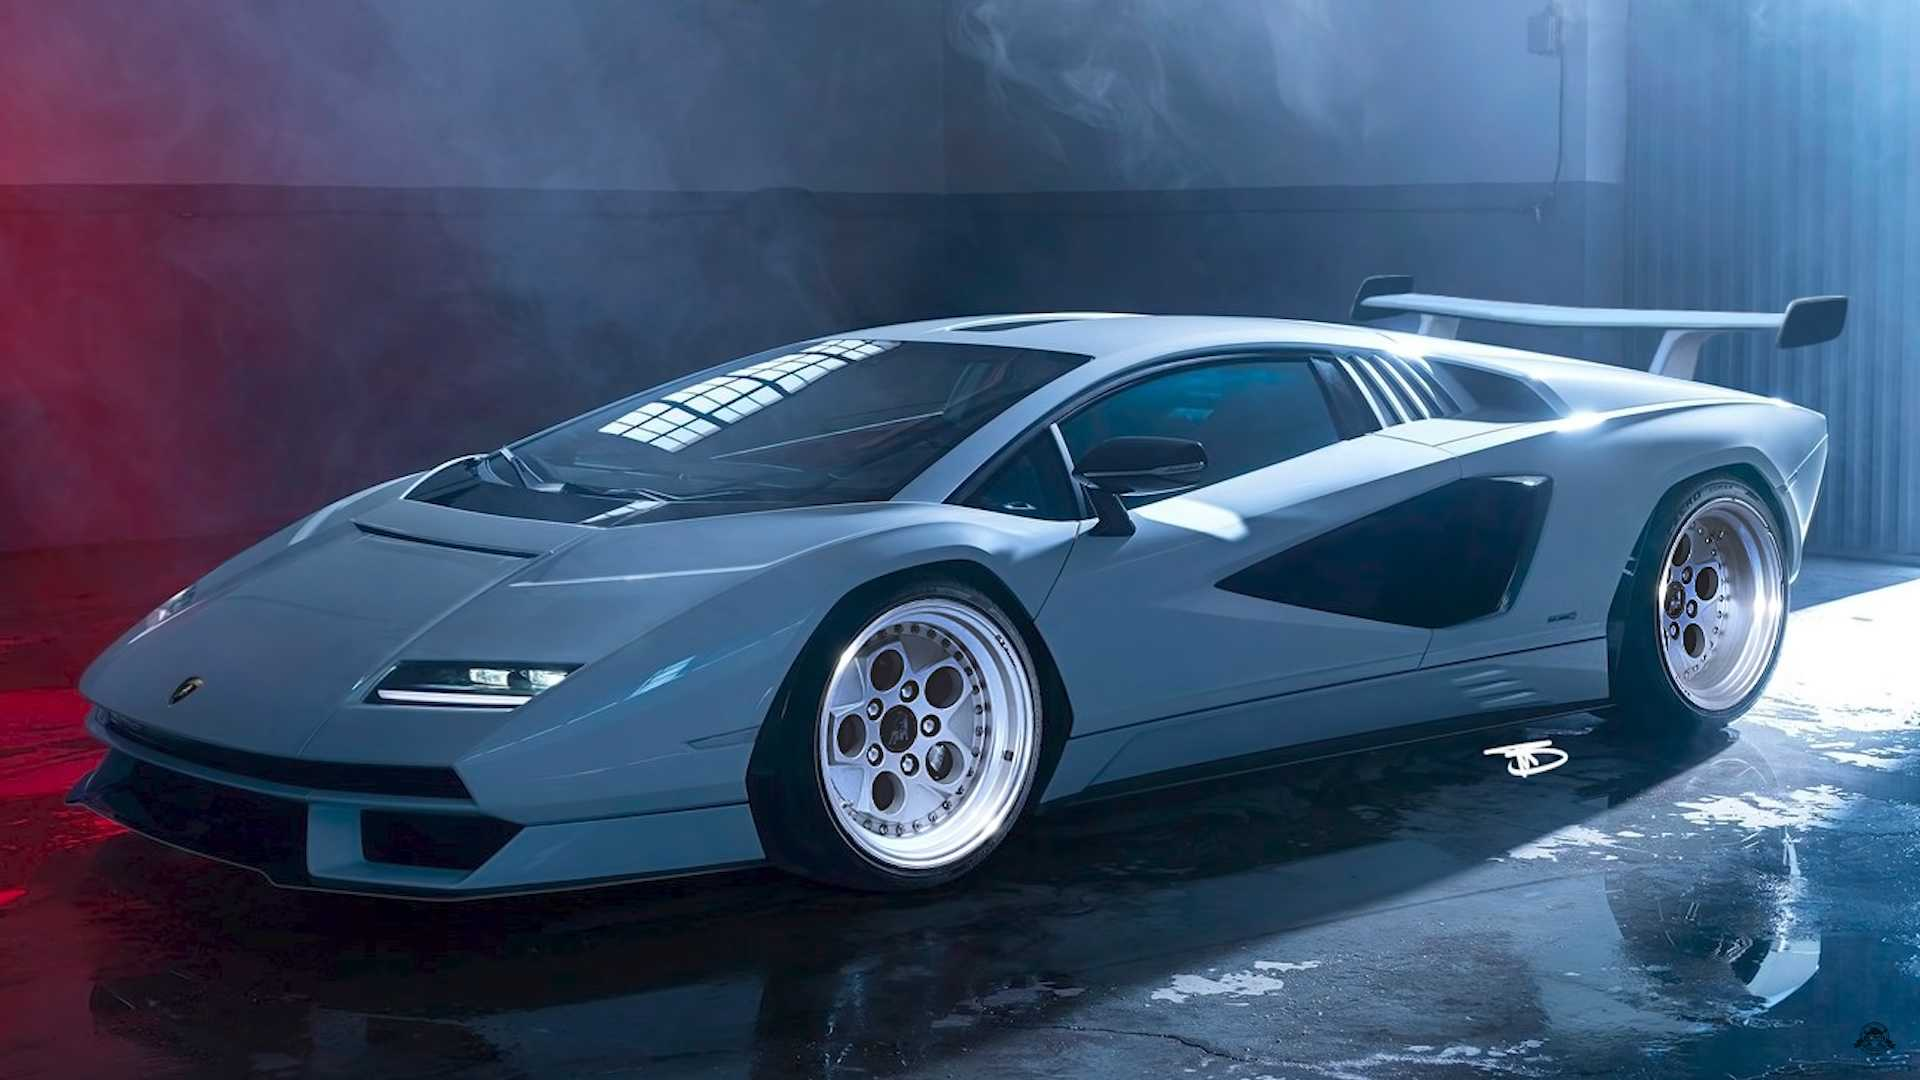 Lamborghini Countach Rendering Gives Us The Wing We Always Wanted